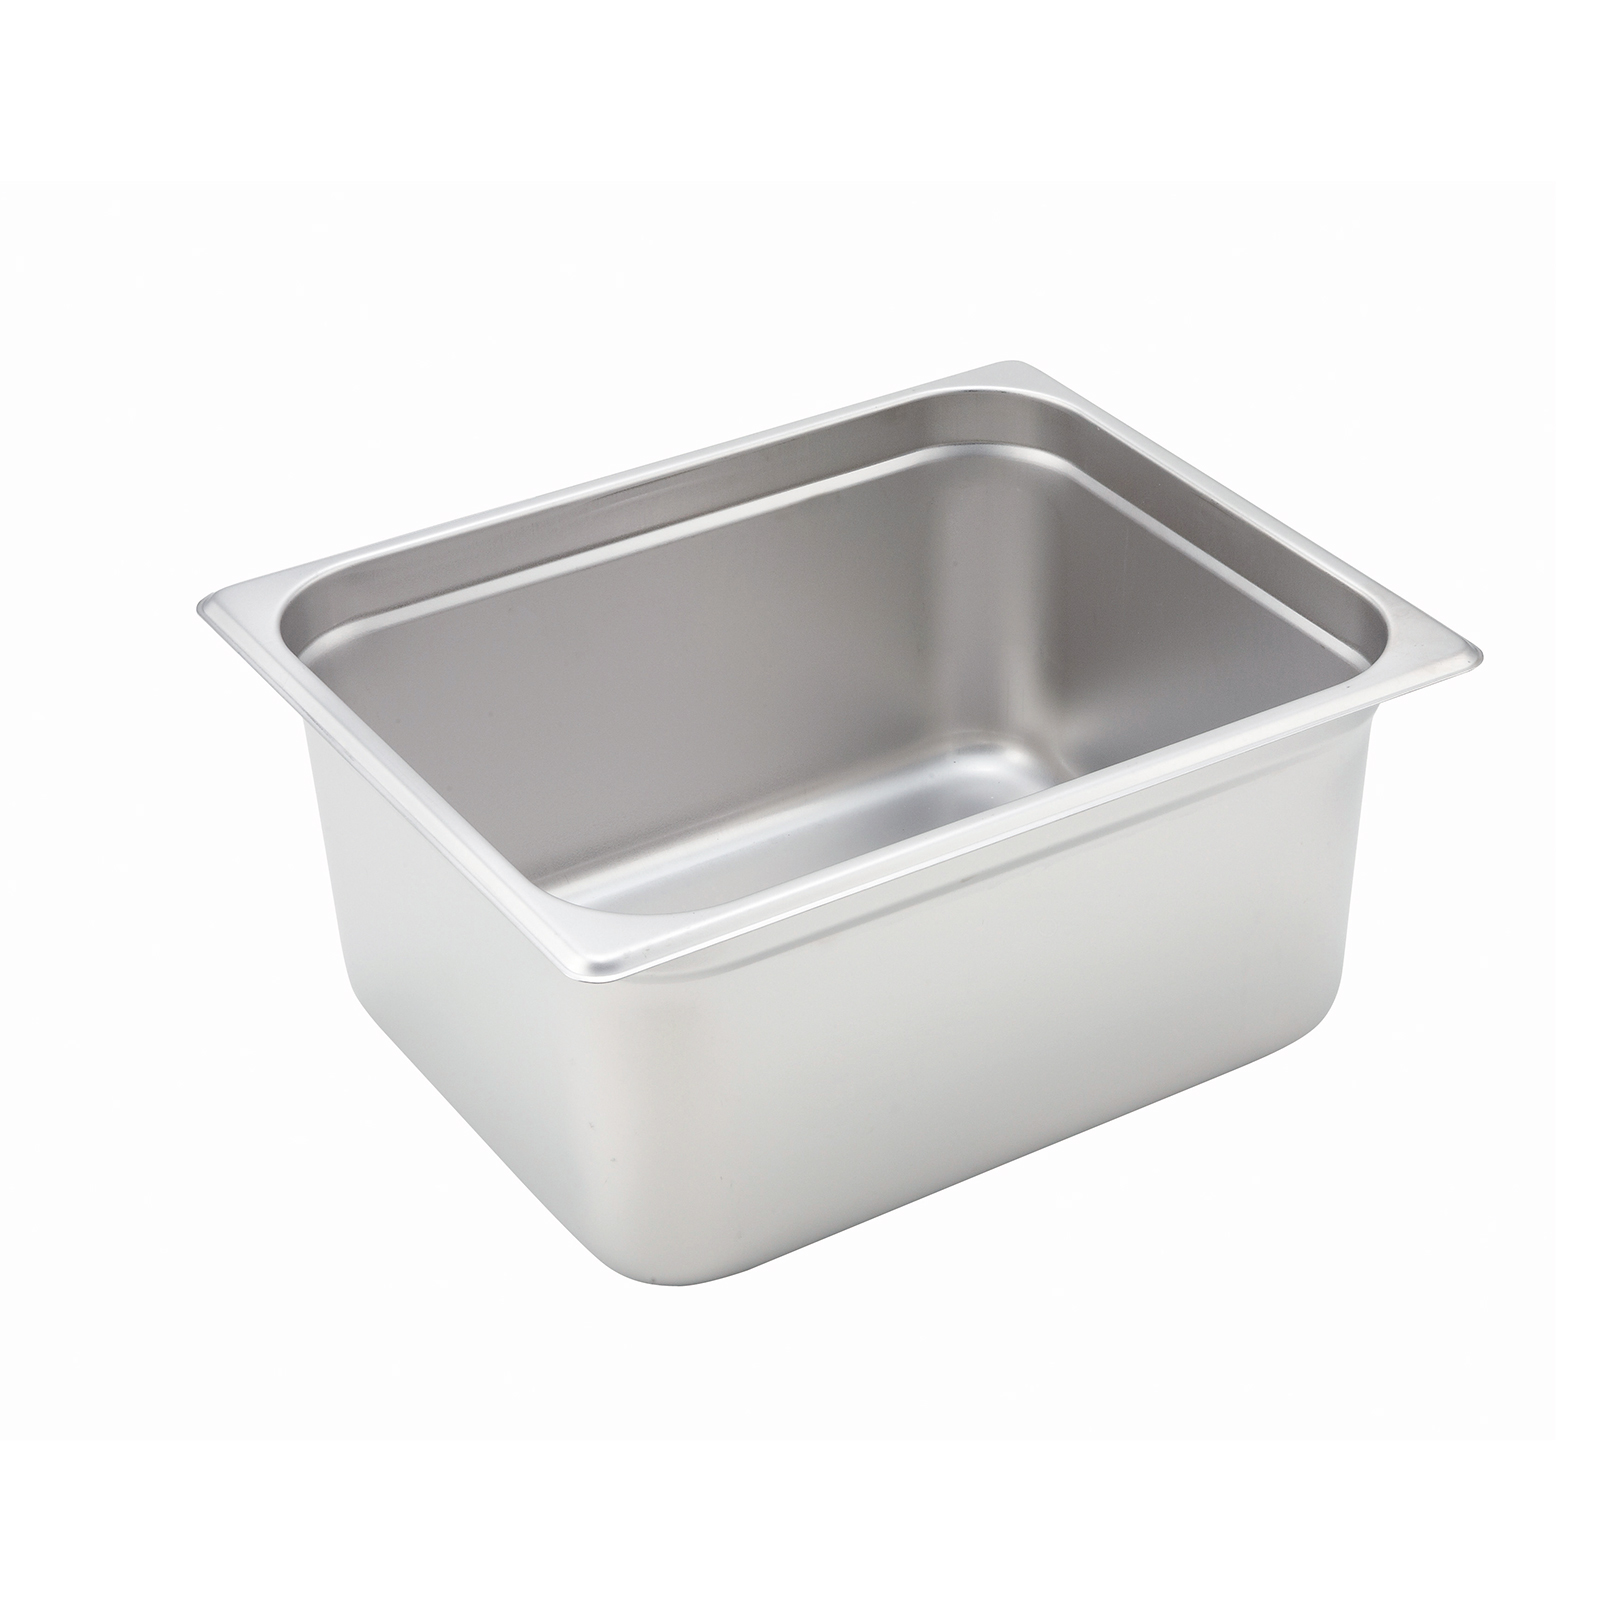 Winco SPJH-206 steam table pan, stainless steel